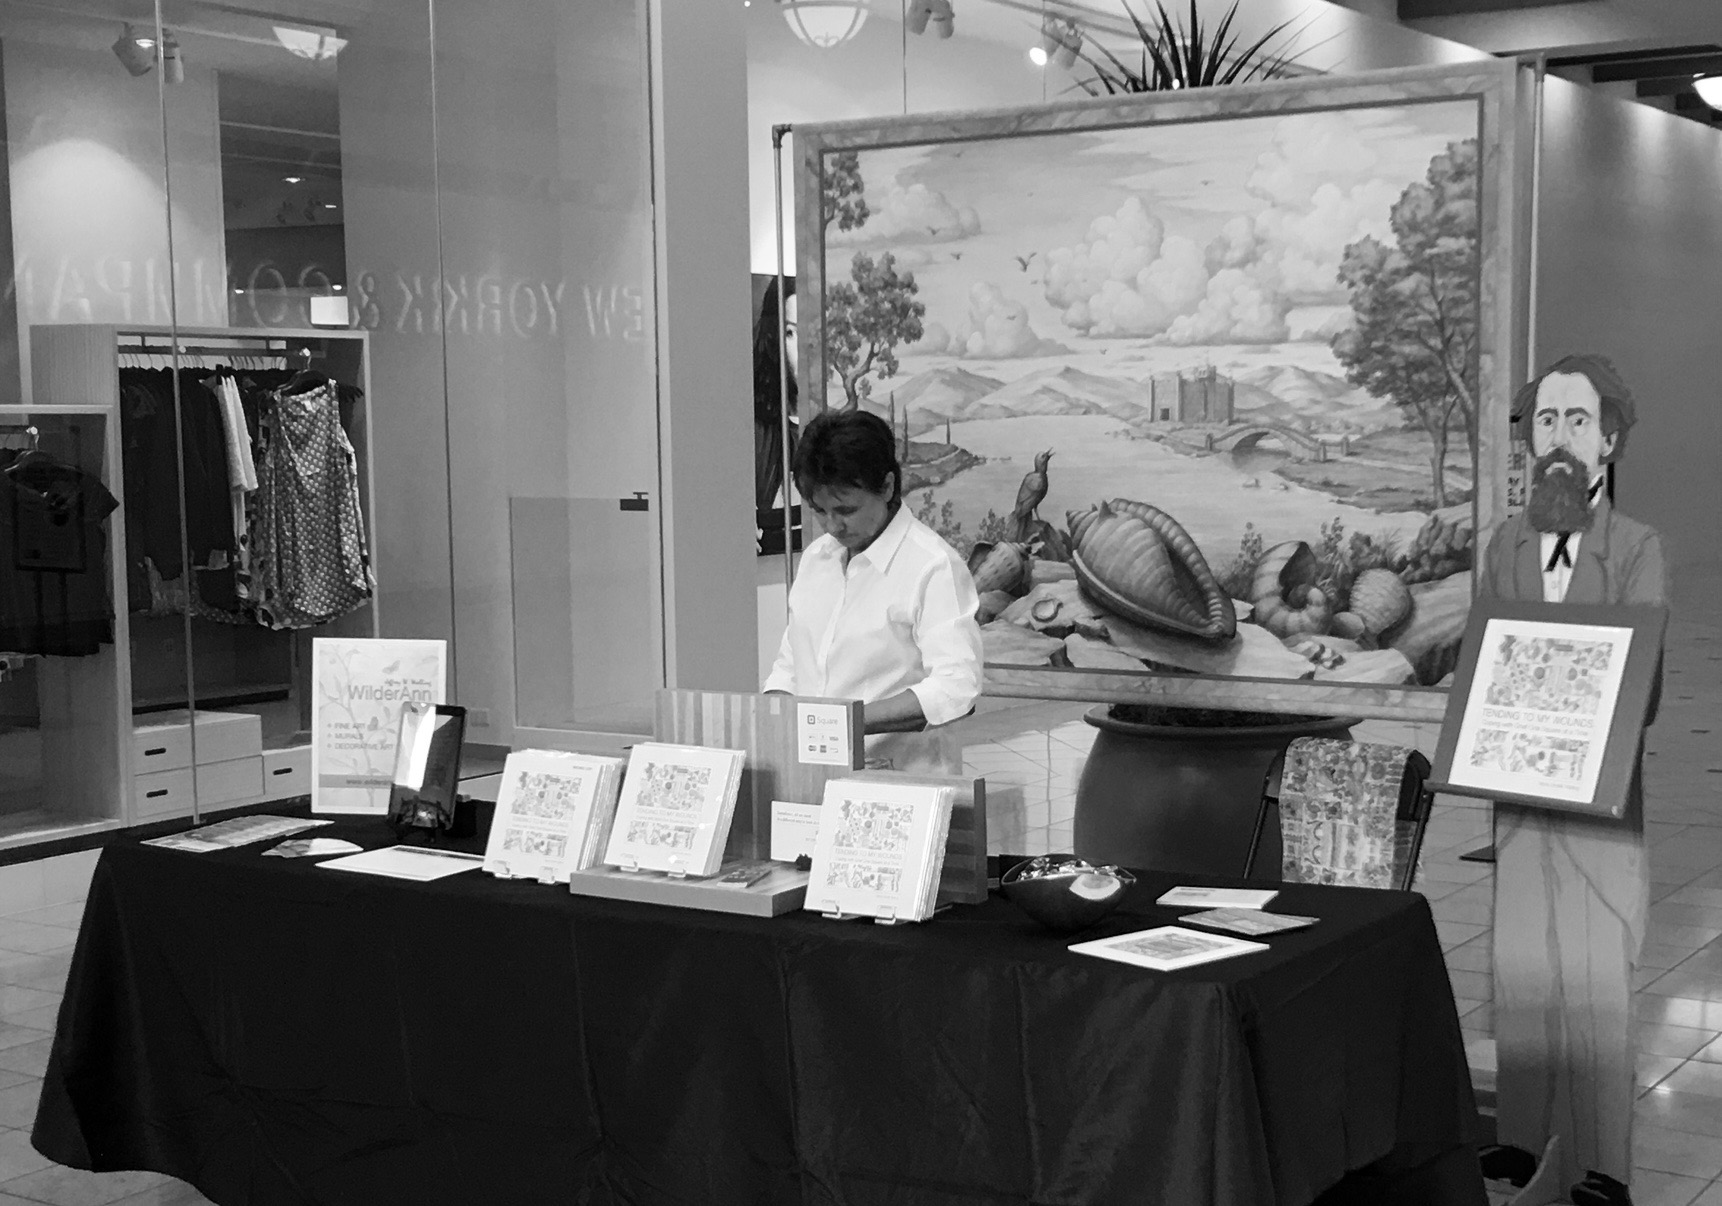 Author, Debra Walling setting up the display